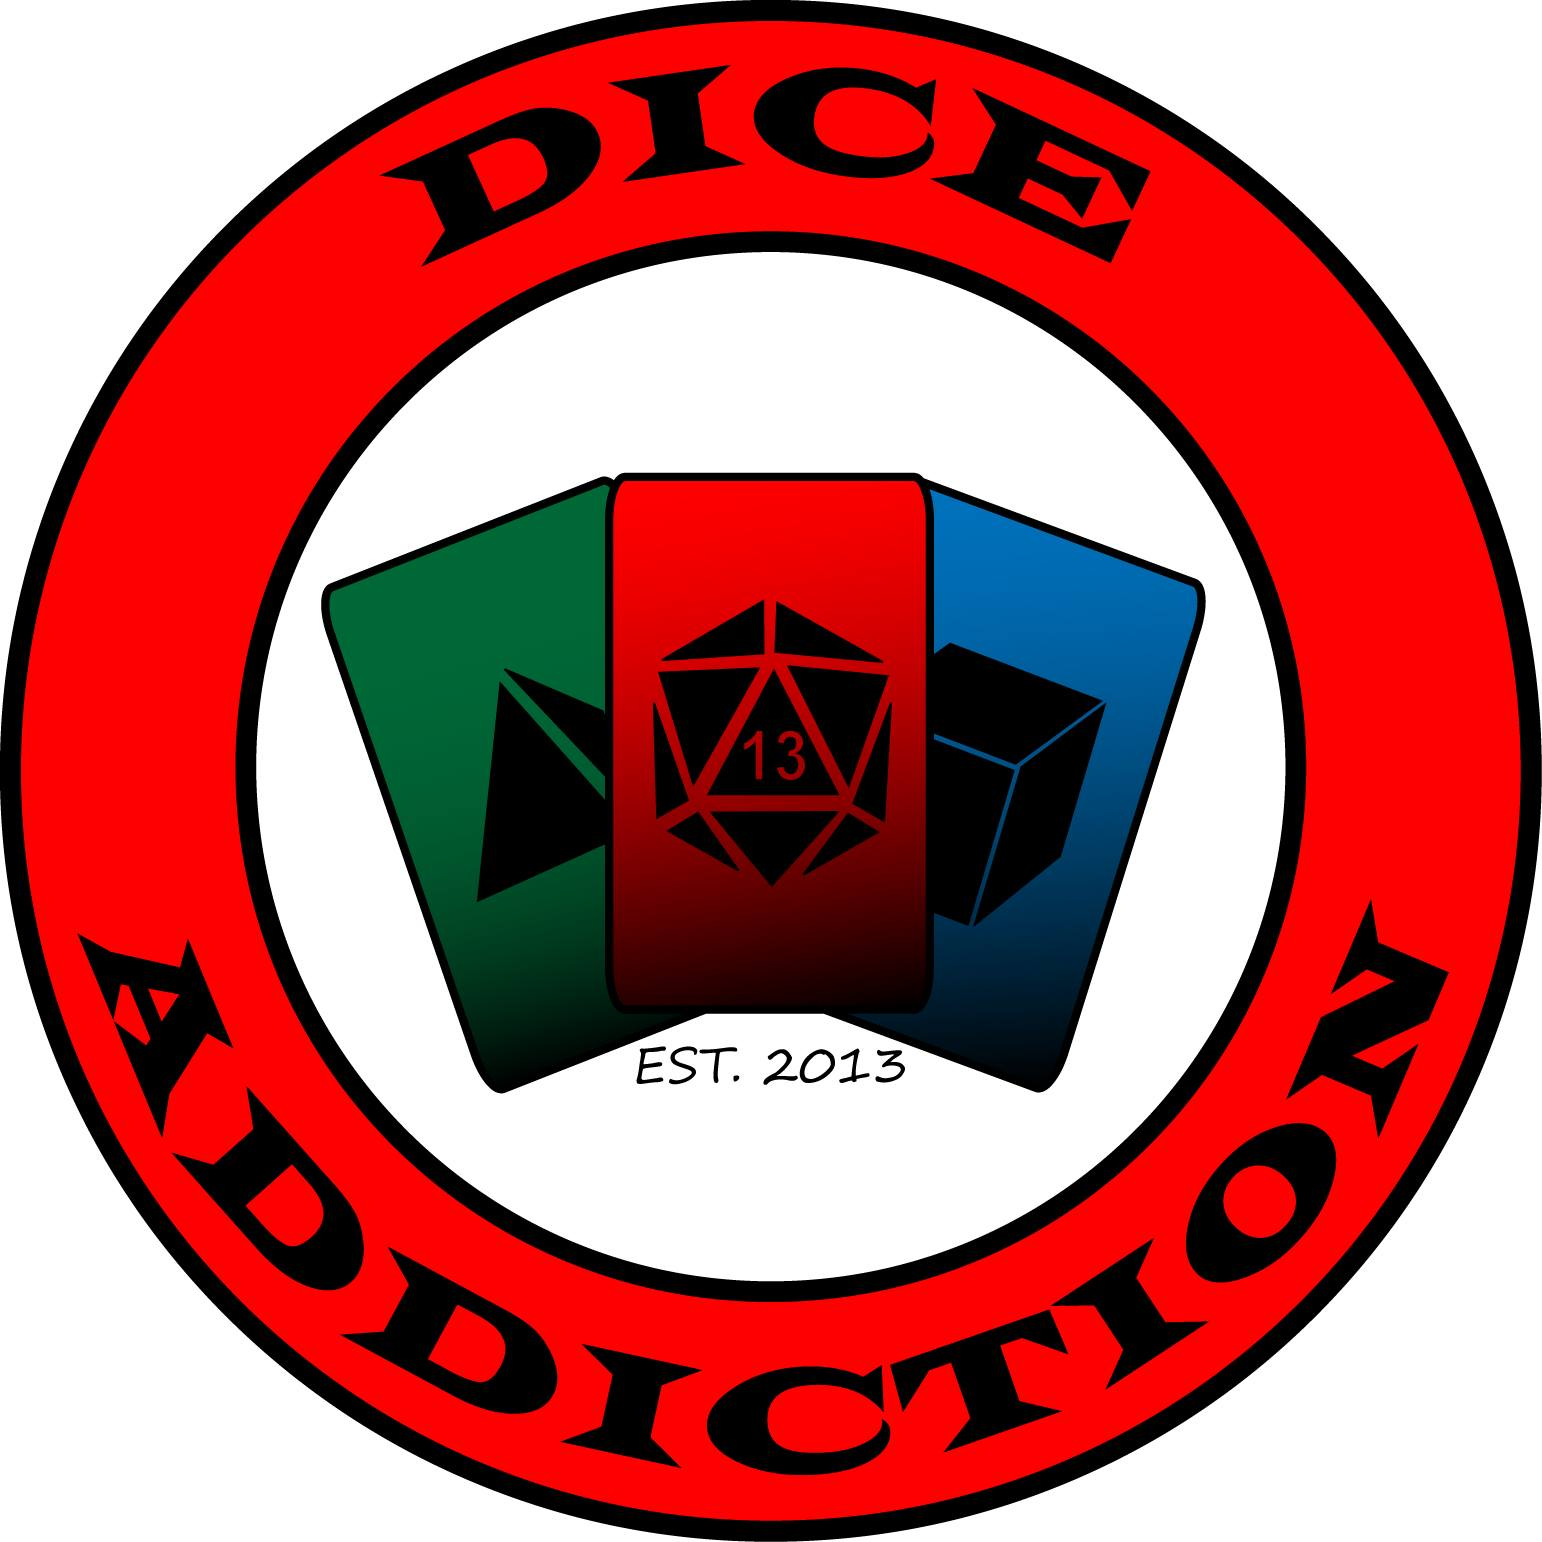 Dice Addiction